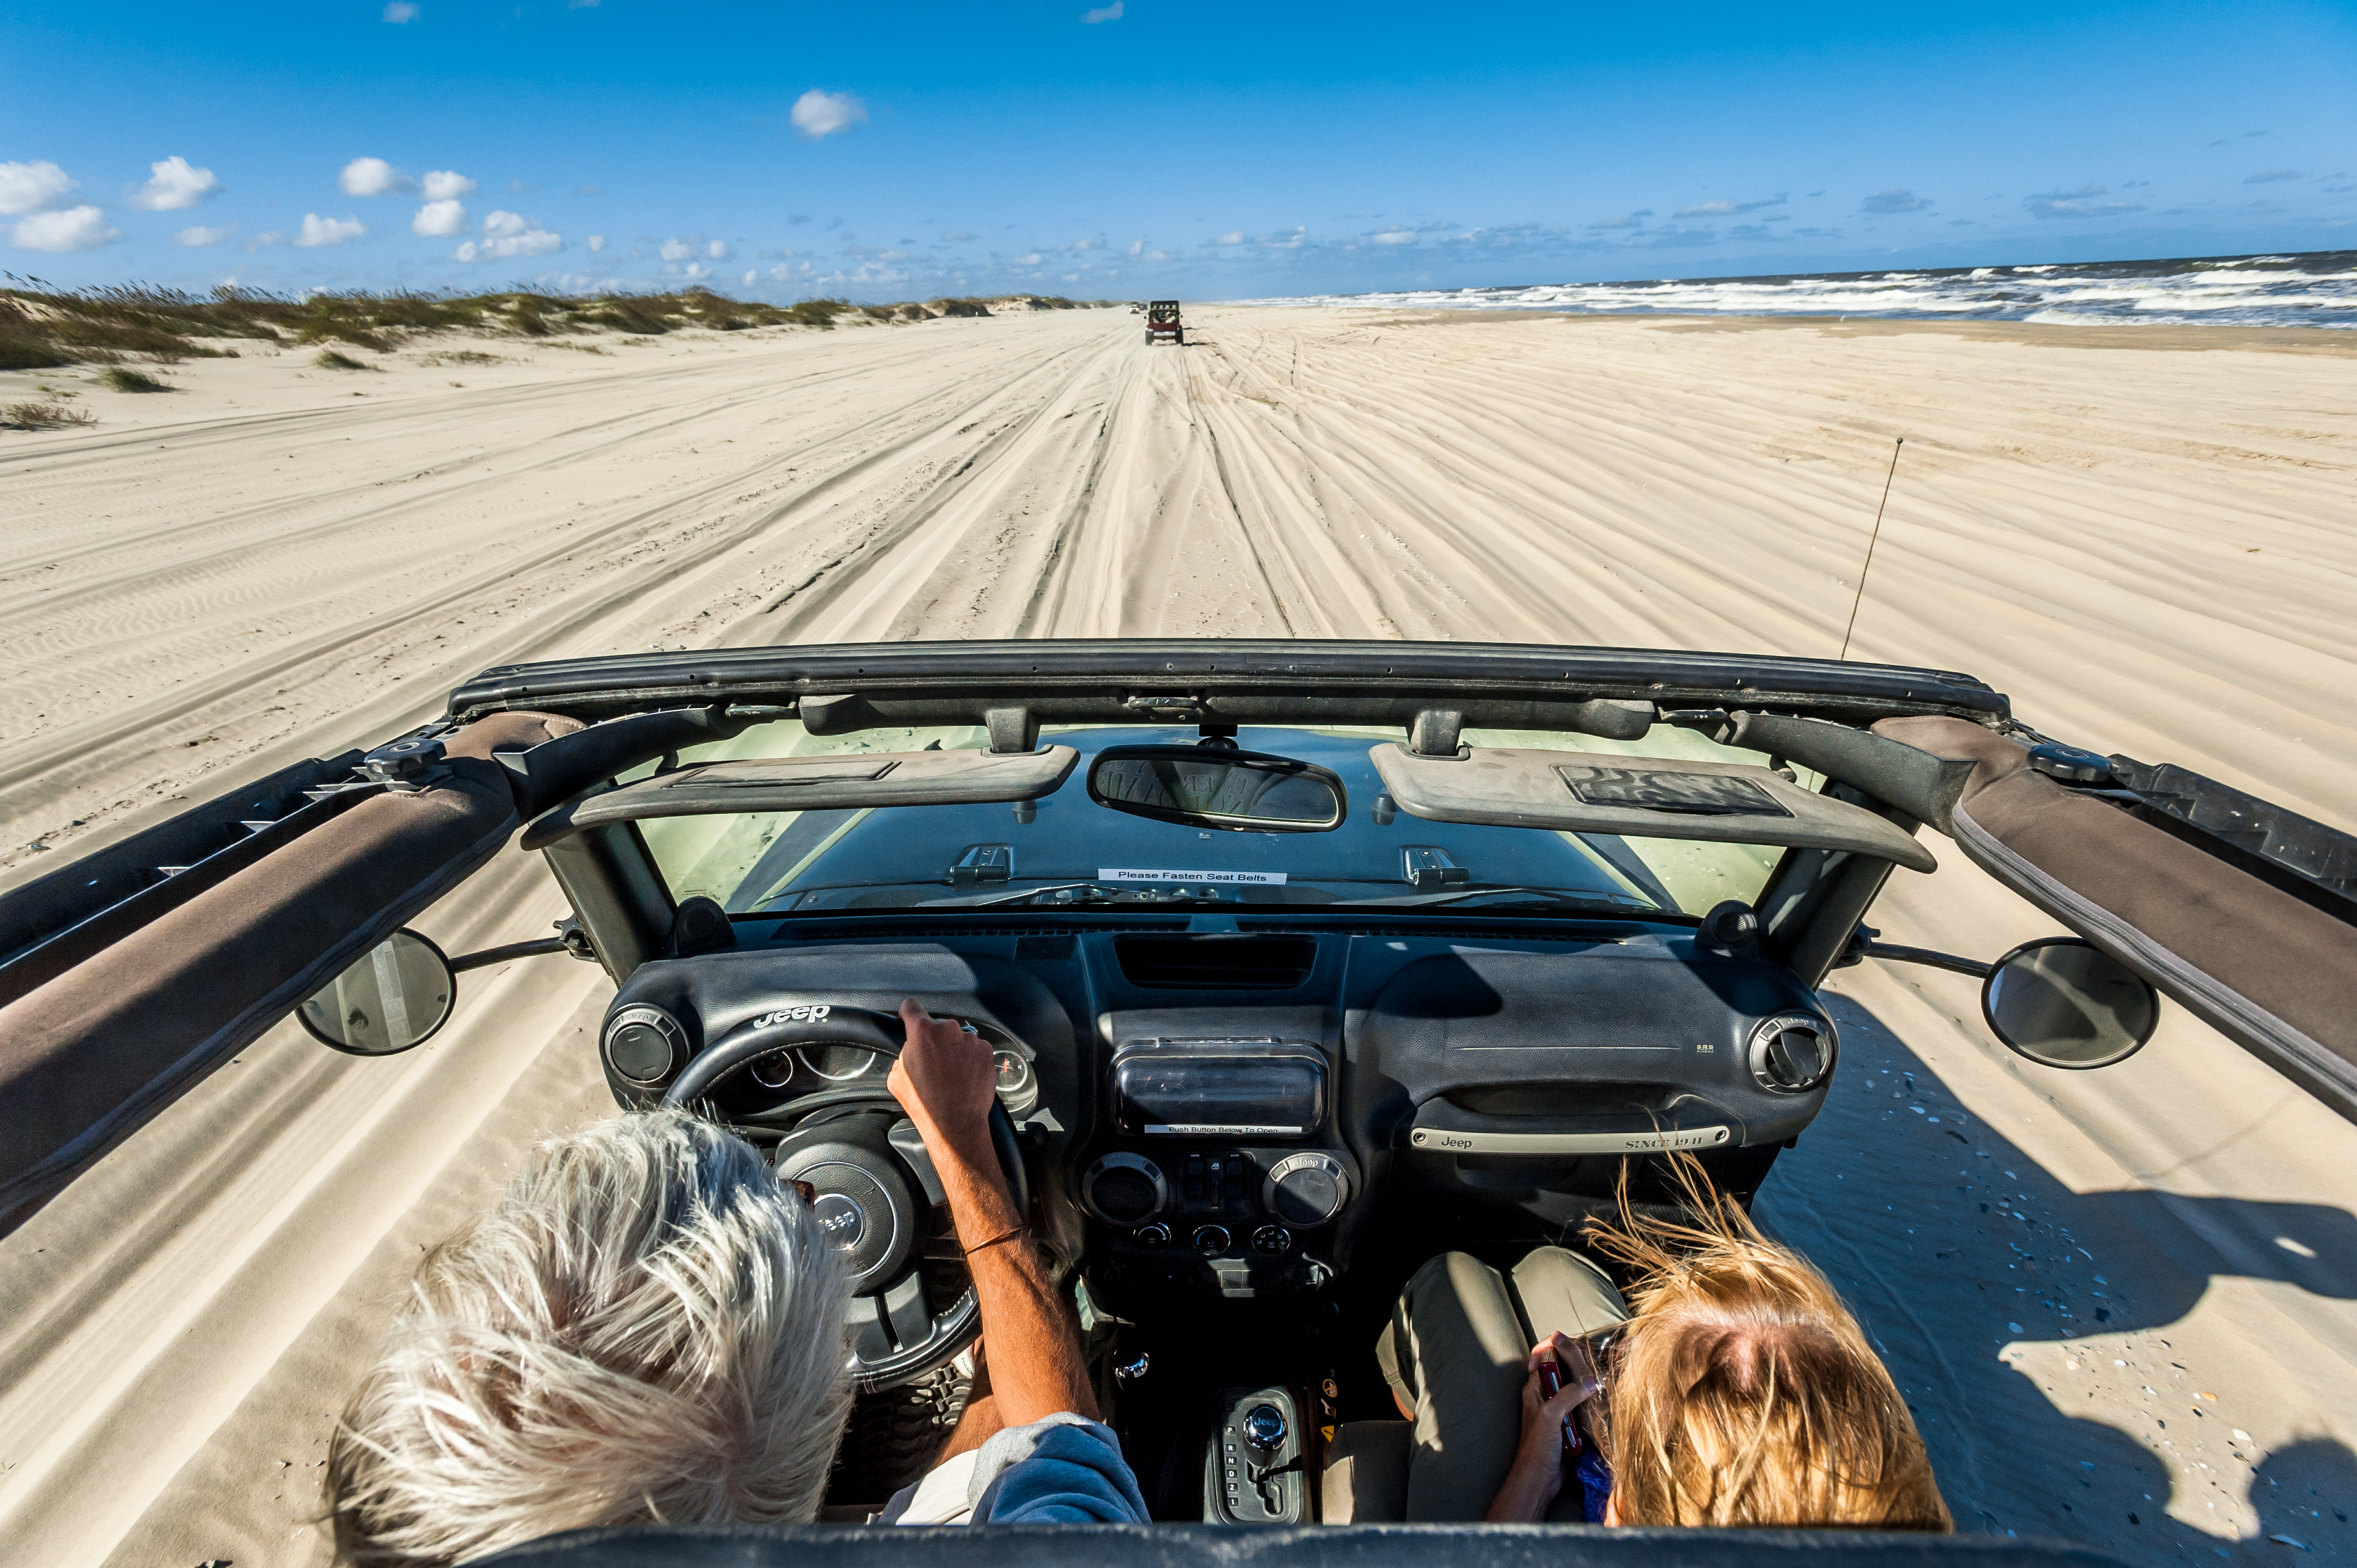 Driving on the sand in Currituck